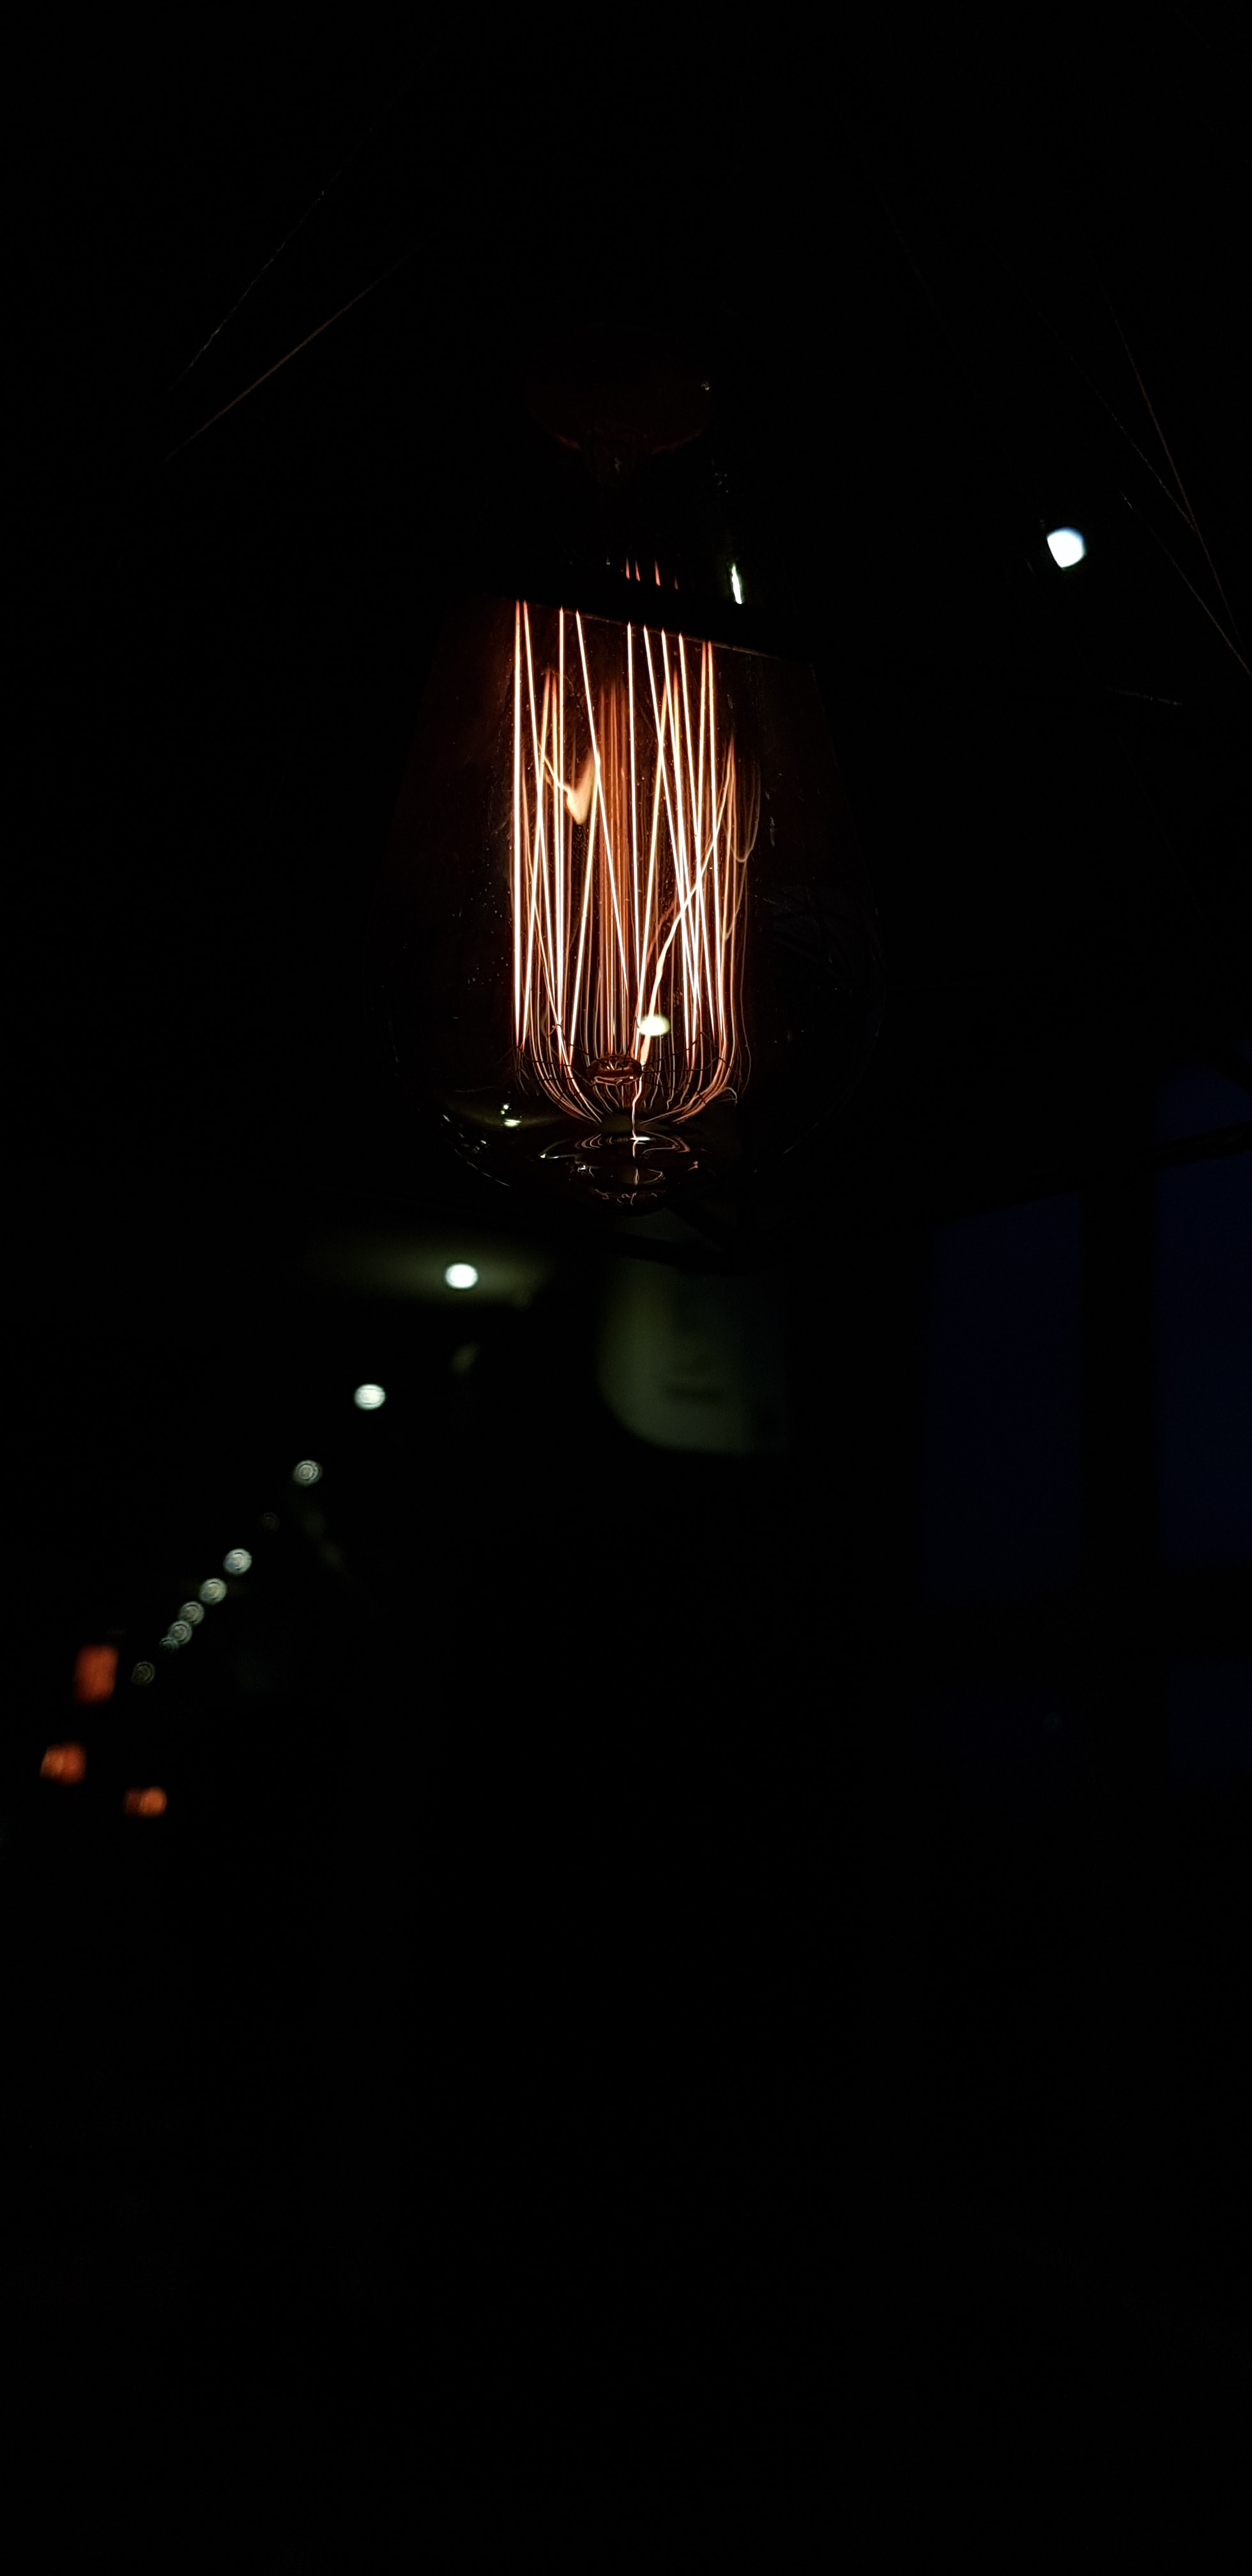 closeup photo of bulb light